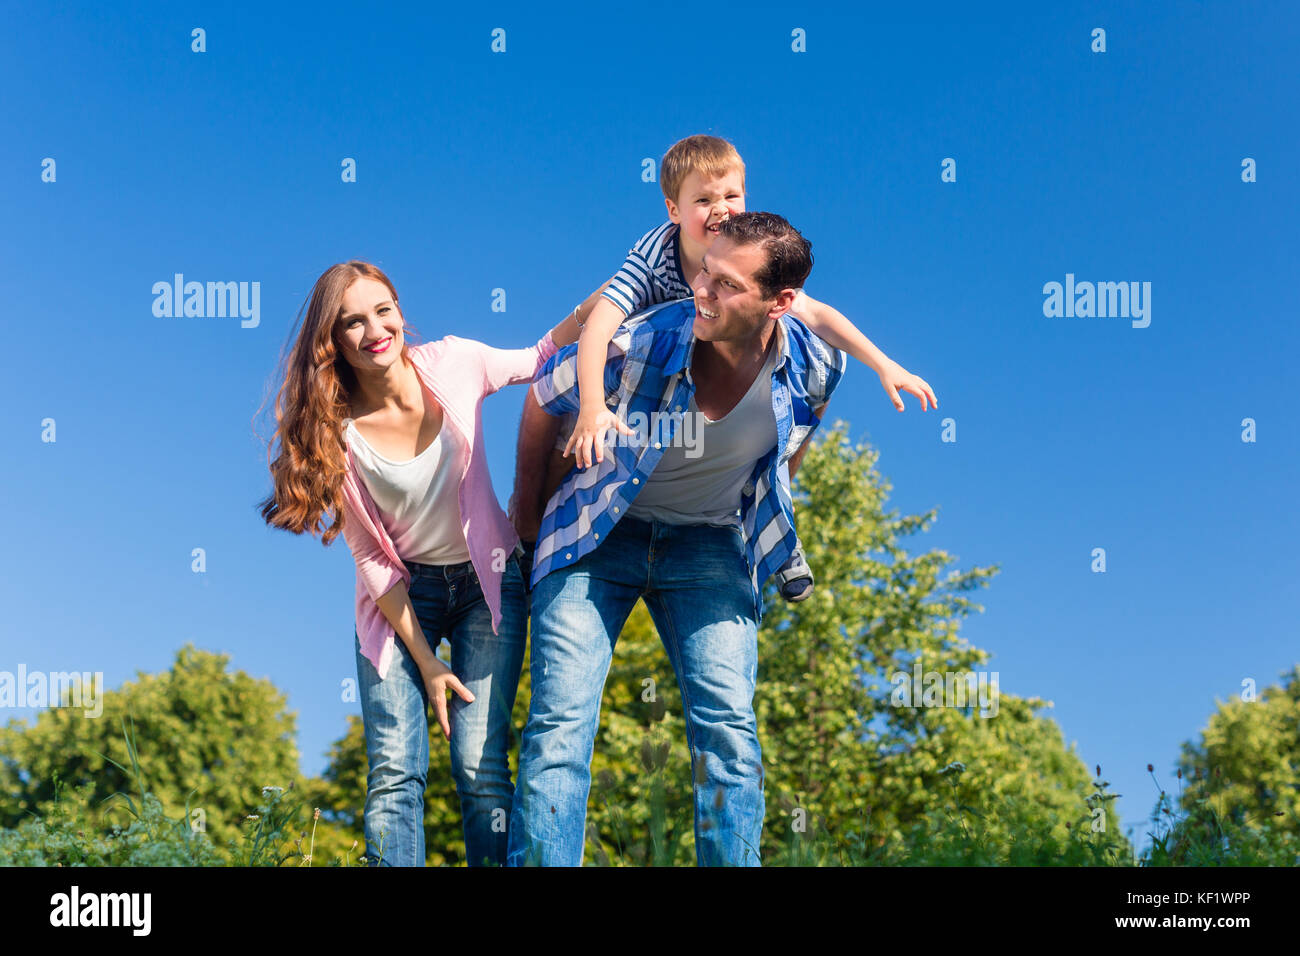 Daddy carrying son piggyback sur son dos Photo Stock